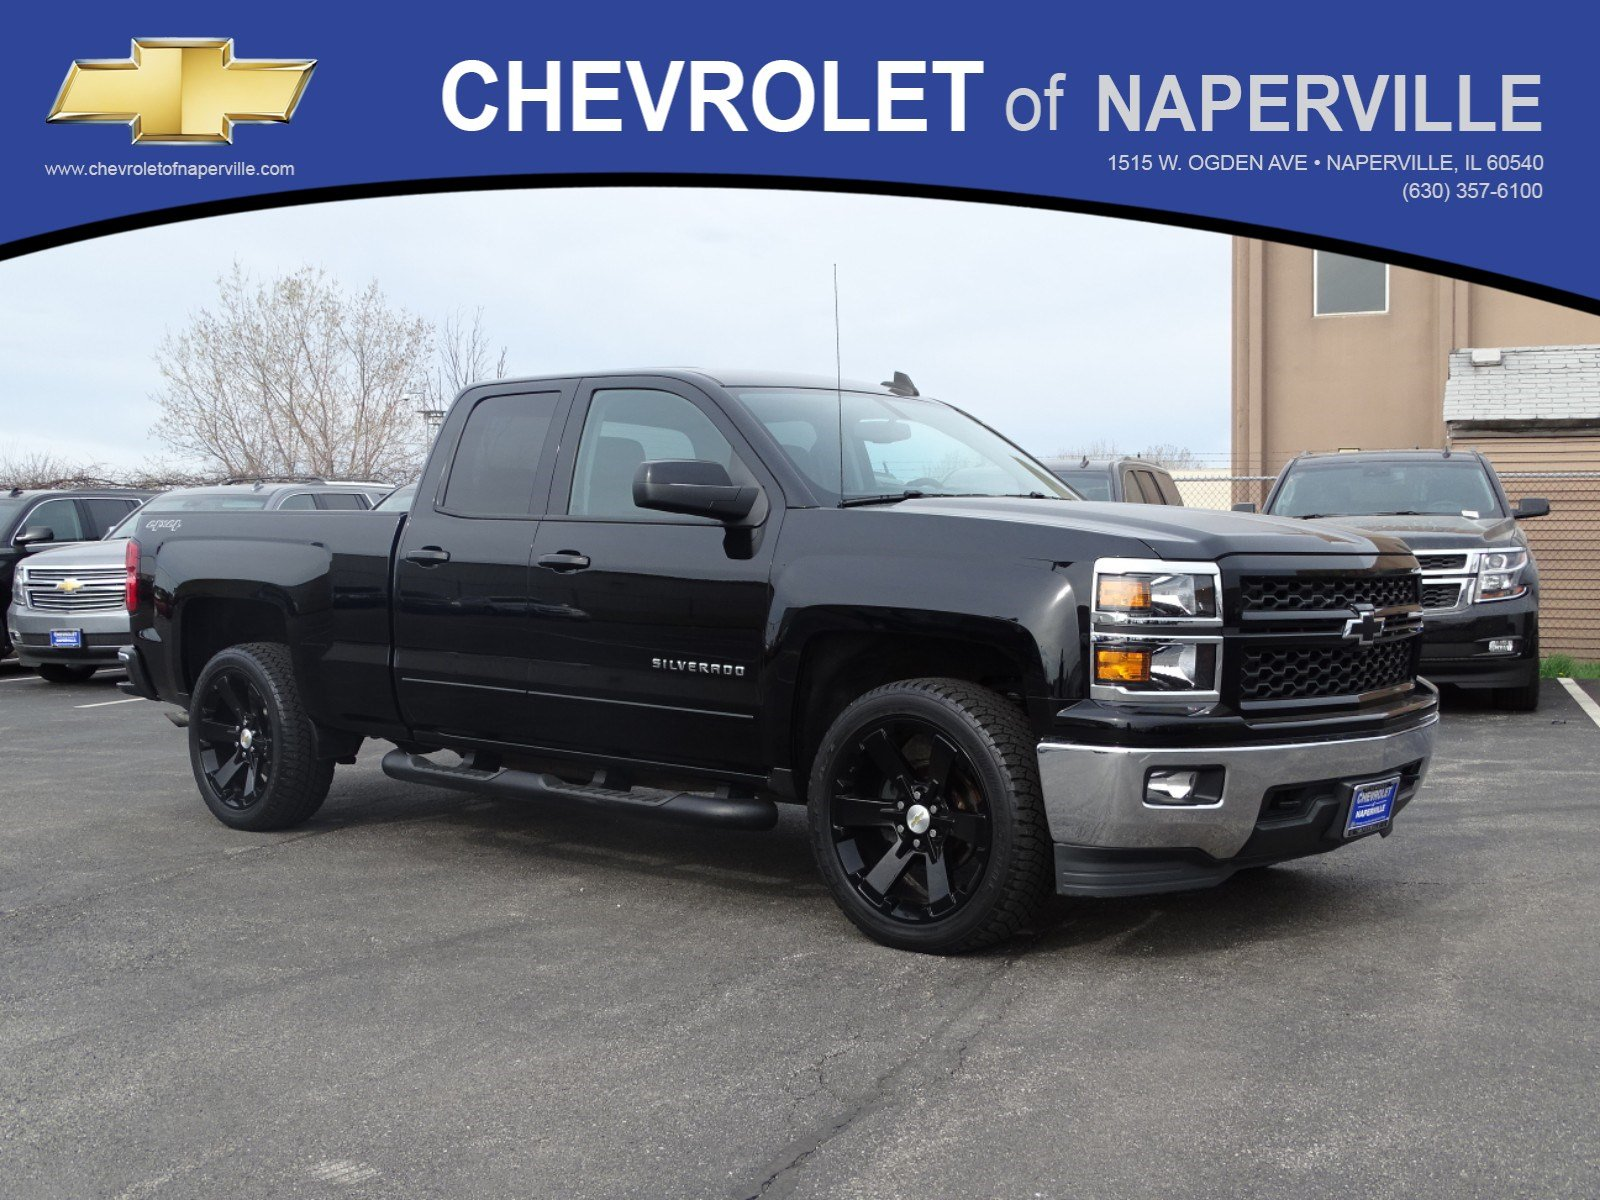 chevrolet price silverado specs grille chrome research mn lake forest